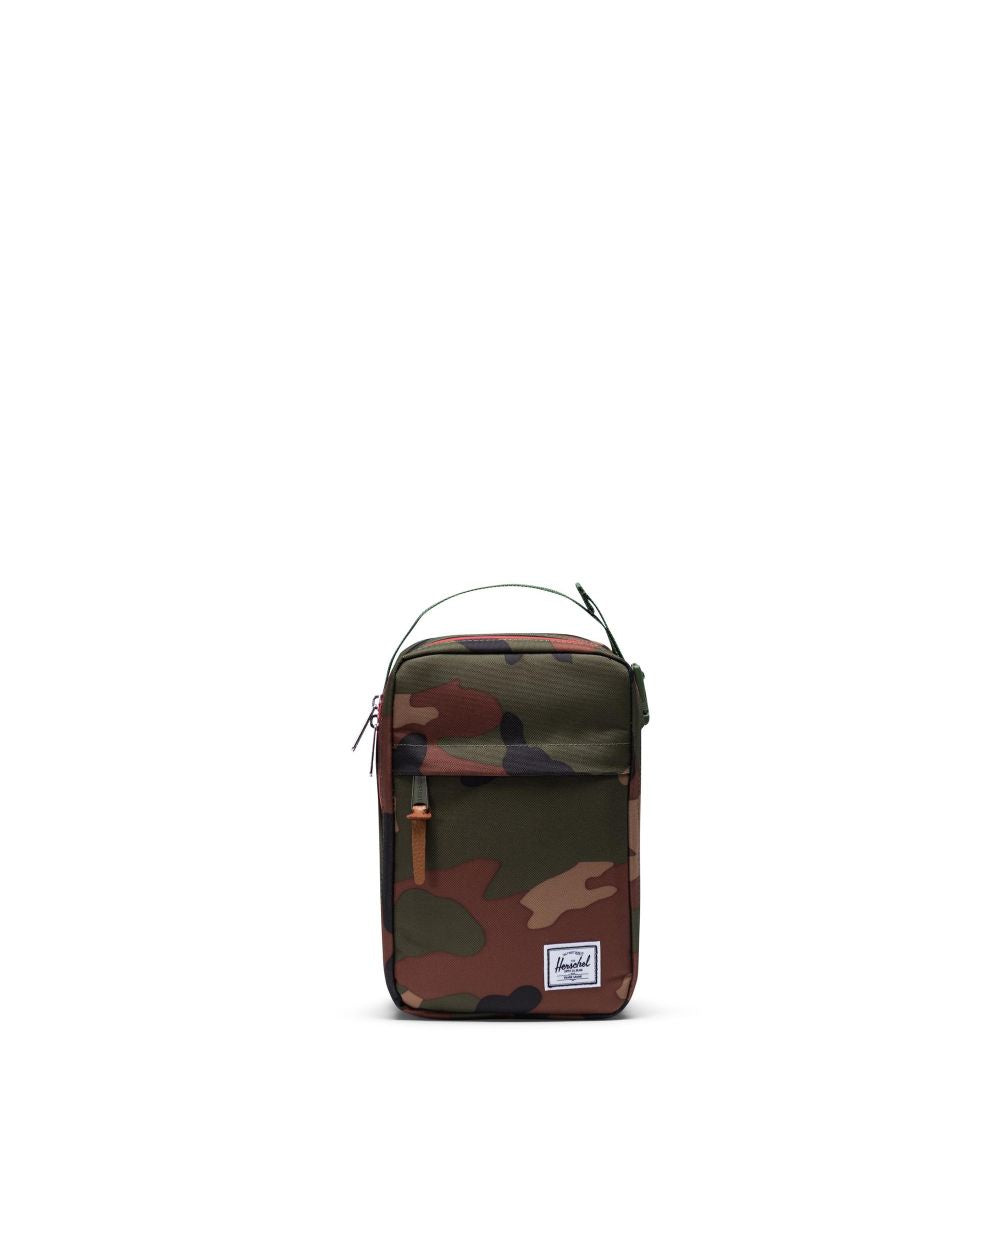 HERSCHEL - CHAPTER TRAVEL KIT CONNECT IN WOODLAND CAMO